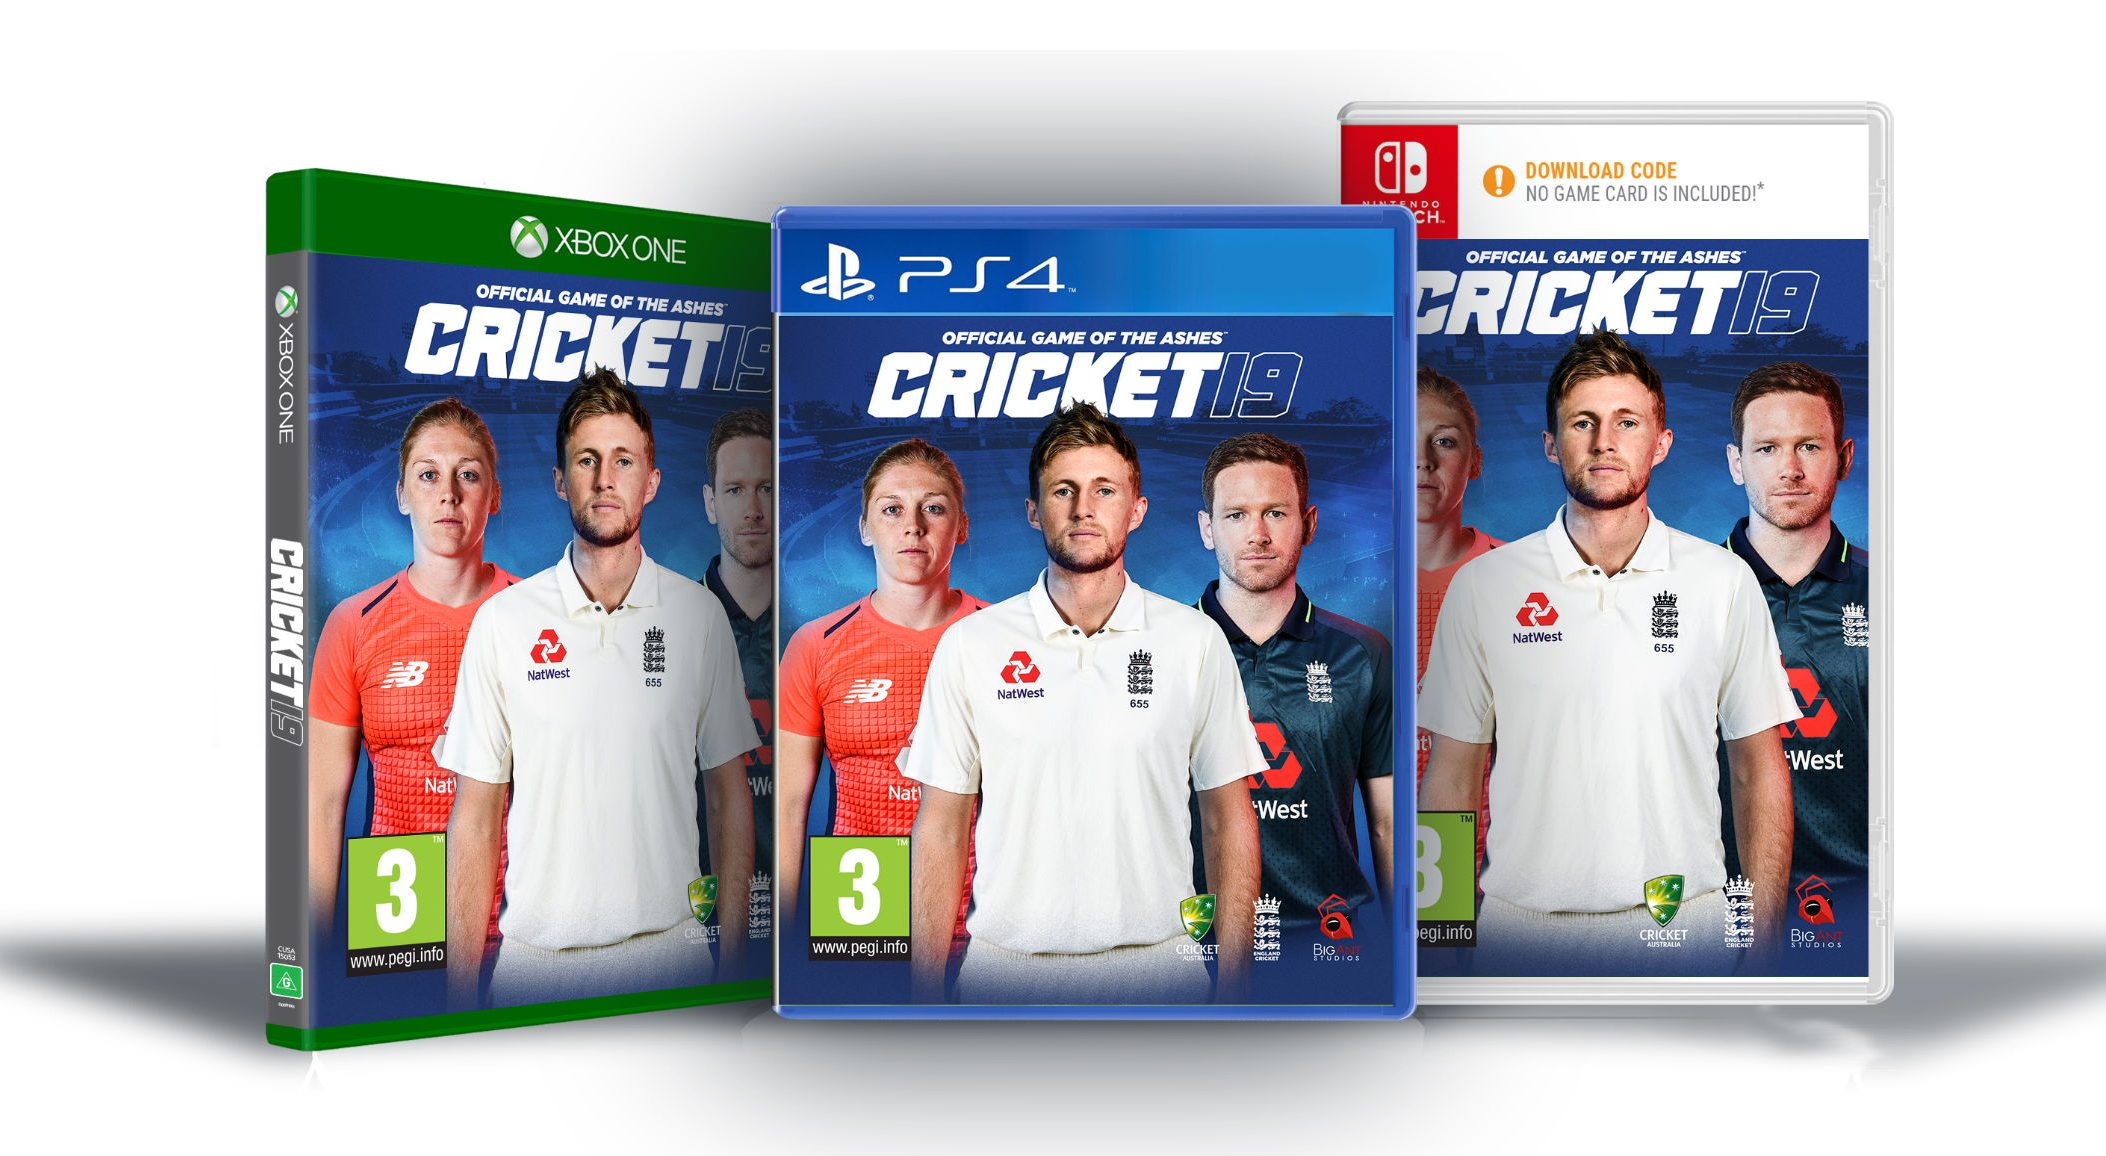 Cricket 19 - The Official Video Game of the Ashes is available on PS4, Xbox One and Nintendo Switch